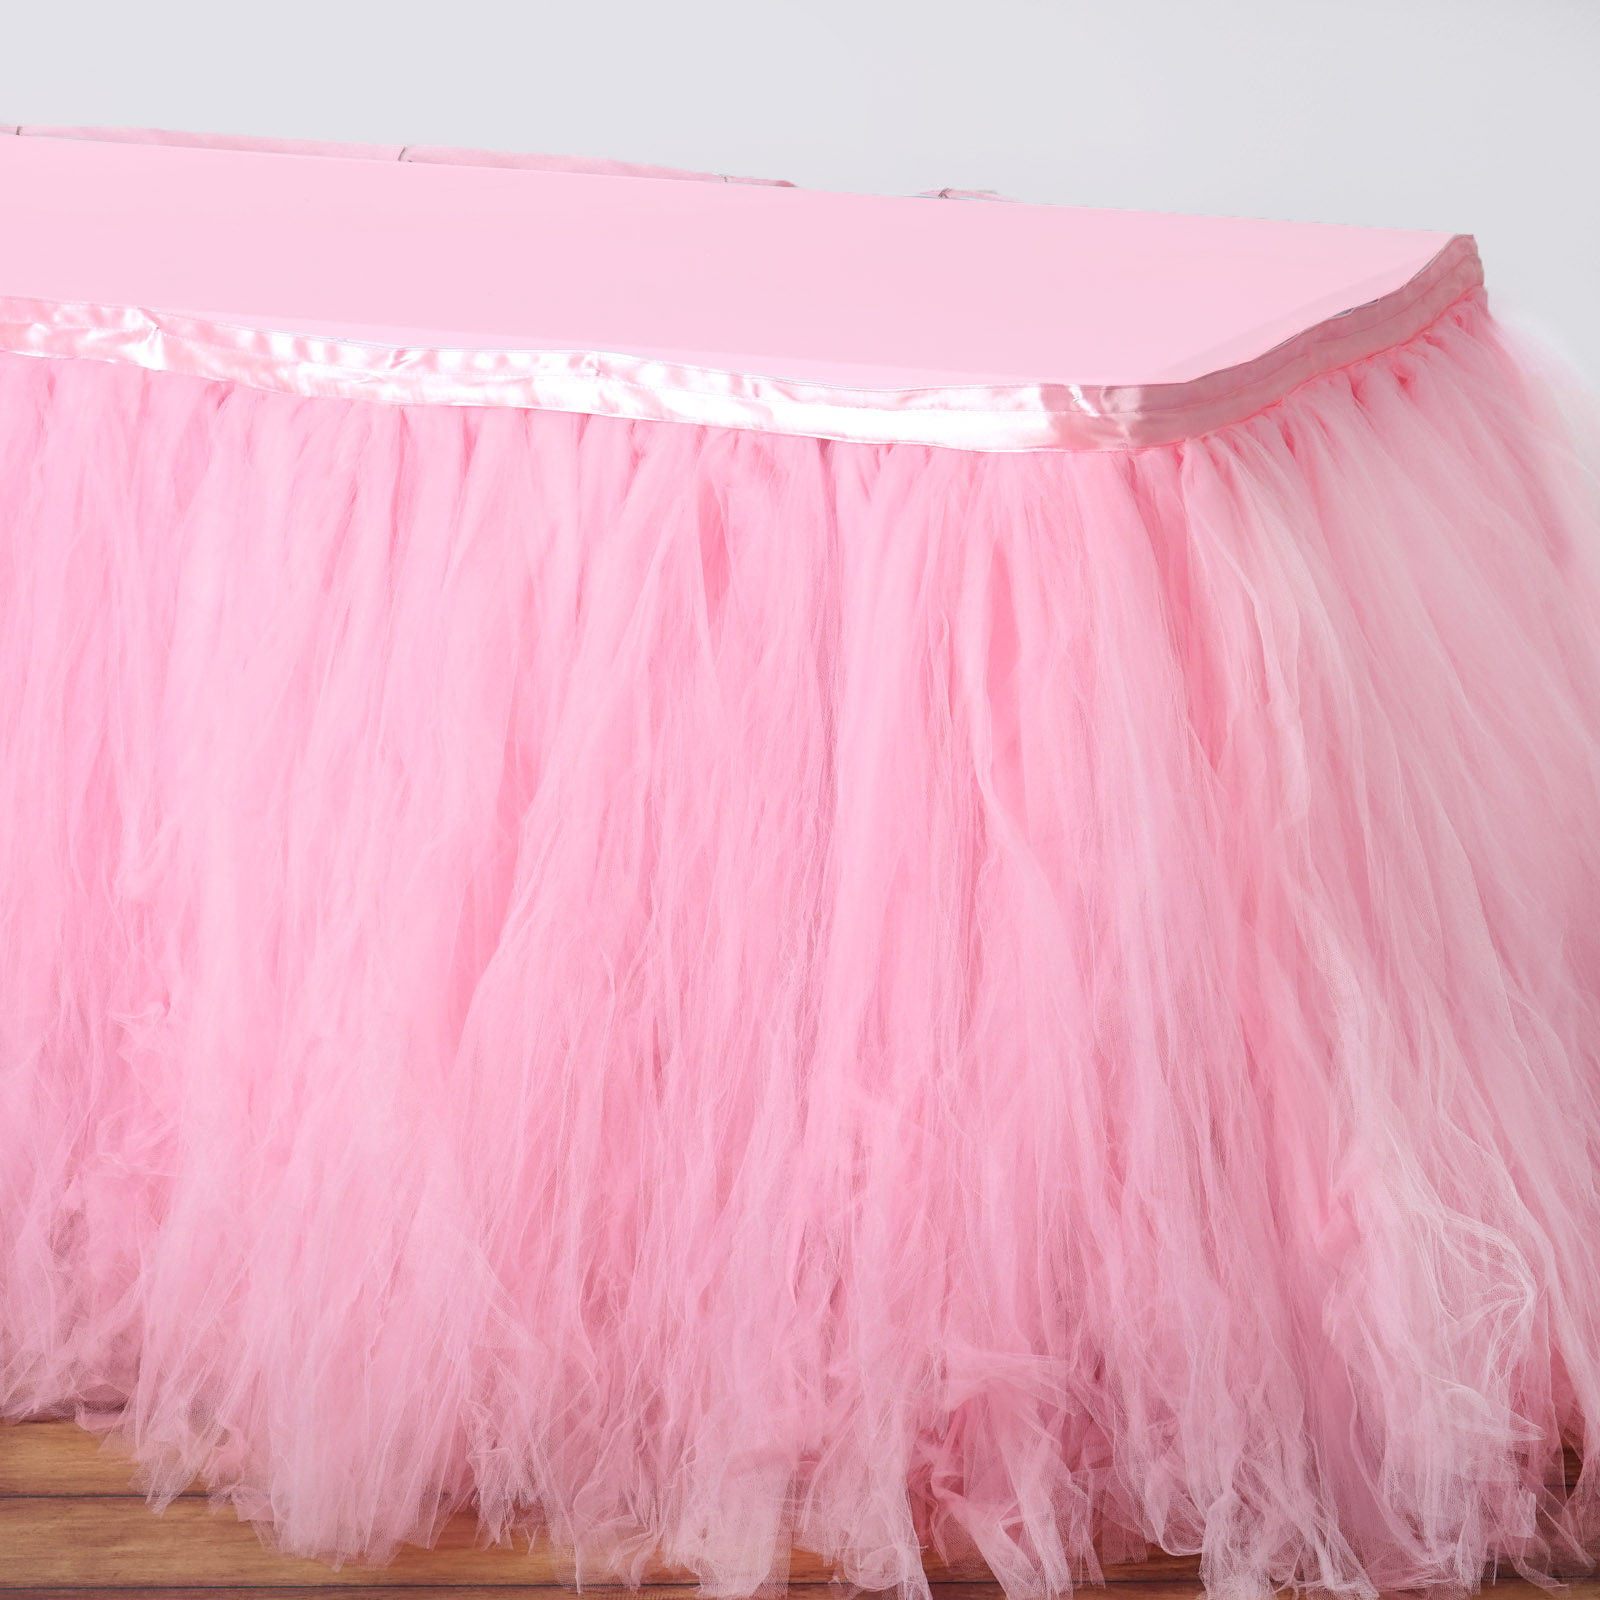 Efavormart 17FT FULL SIZE 8 Layer Fluffy Tulle - Tutu Table Skirt for Kitchen Dining Catering Wedding Birthday Party Decorations